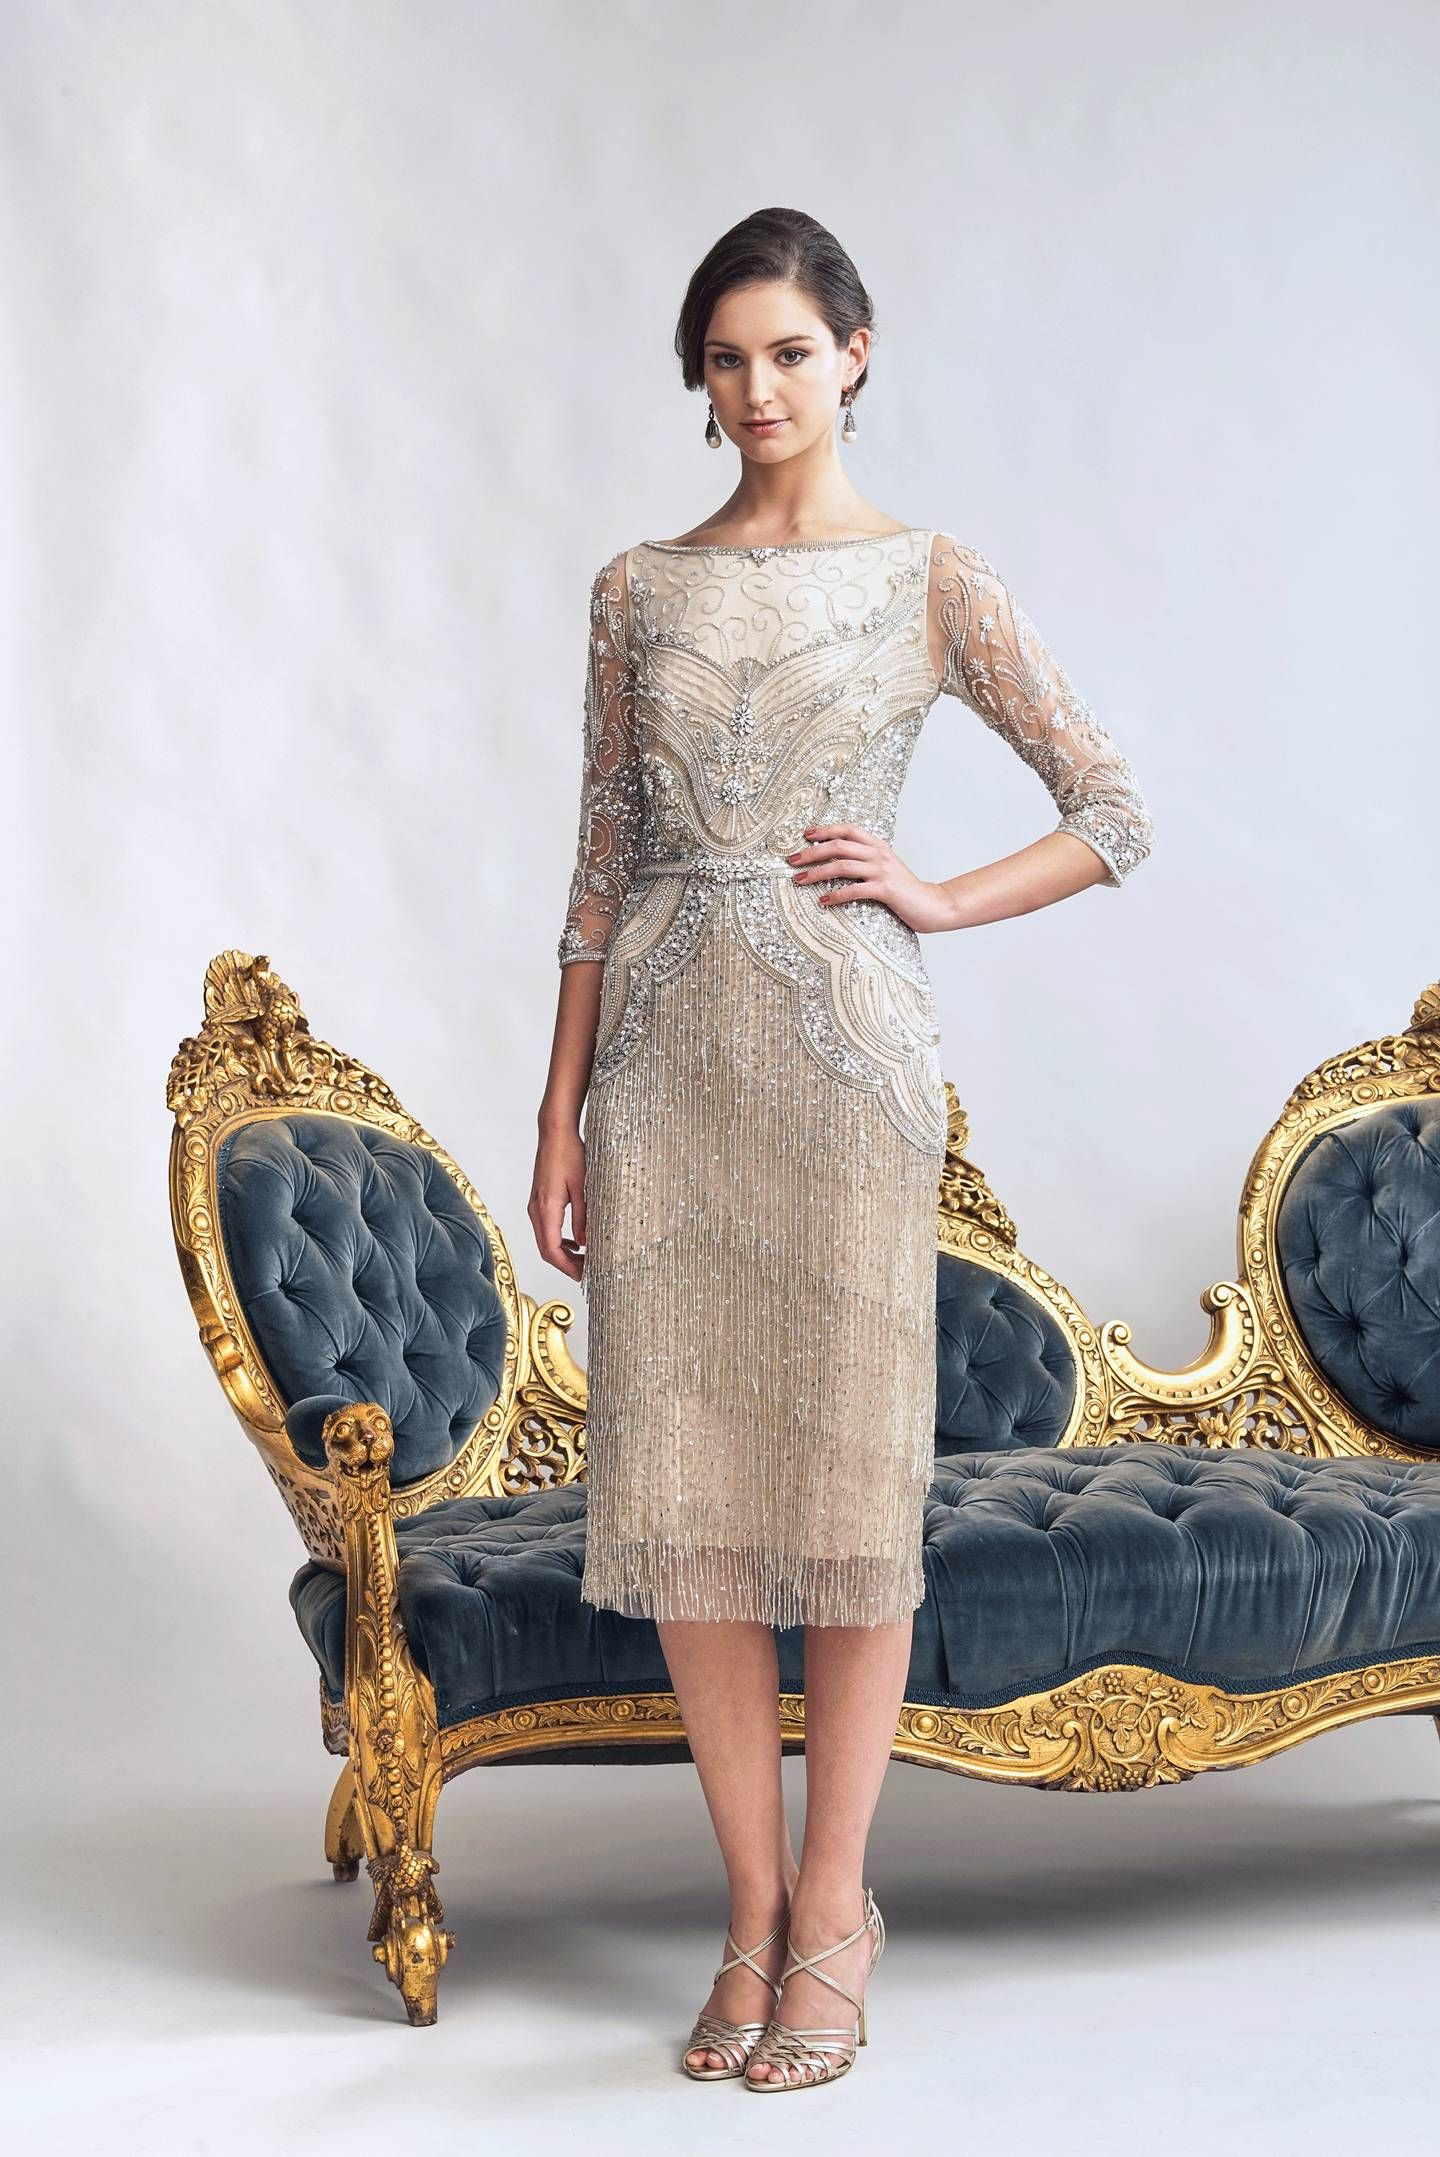 Wedding Ideas Planning Inspiration Mother Of The Bride Dresses Mother Of Bride Outfits Beautiful Bridesmaid Dresses